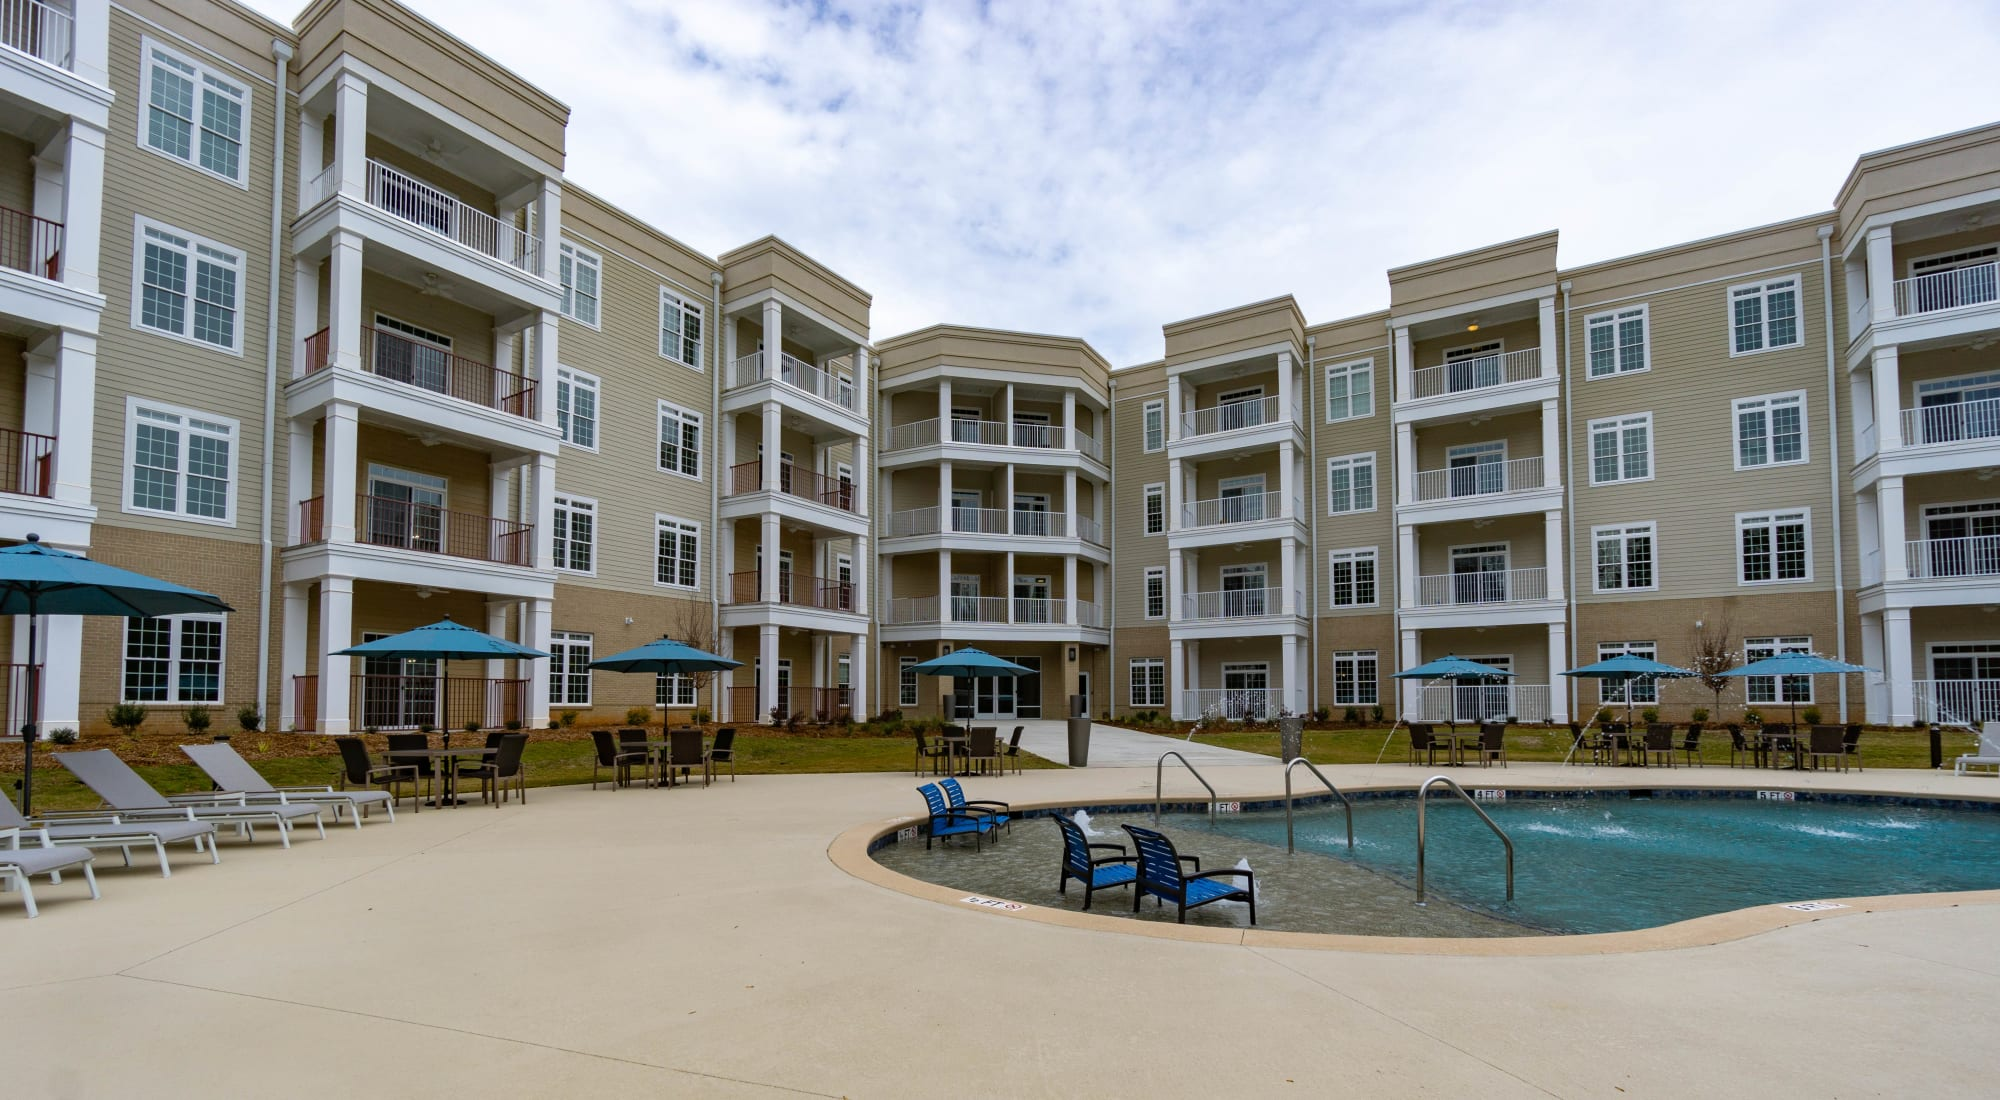 Apartments at The Station at River Crossing in Macon, Georgia